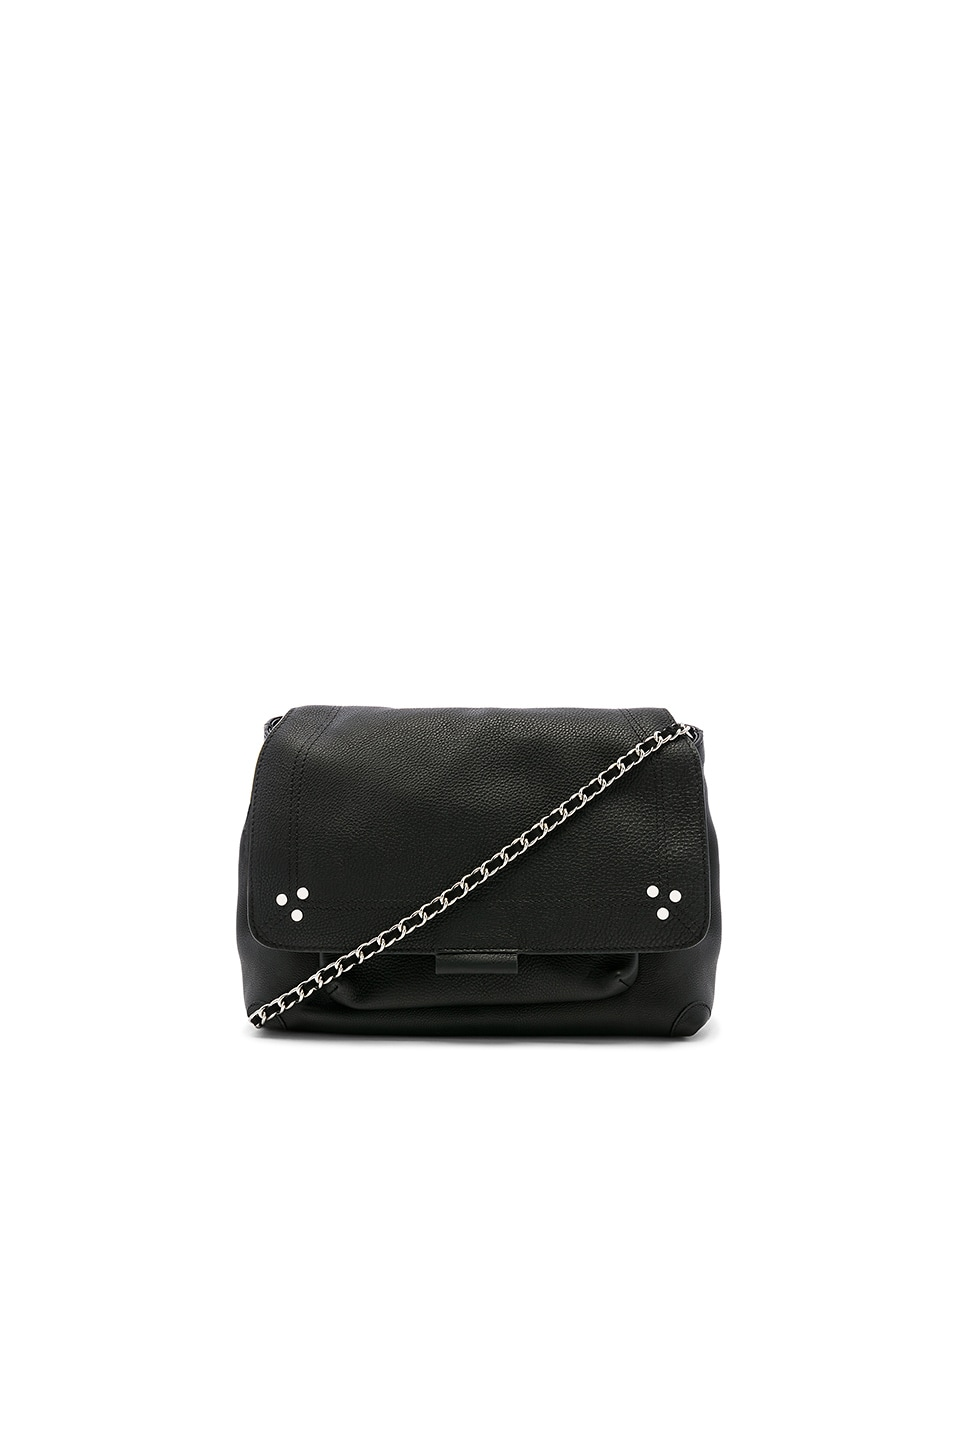 Jerome Dreyfuss Lulu Medium Bag in Noir Silver